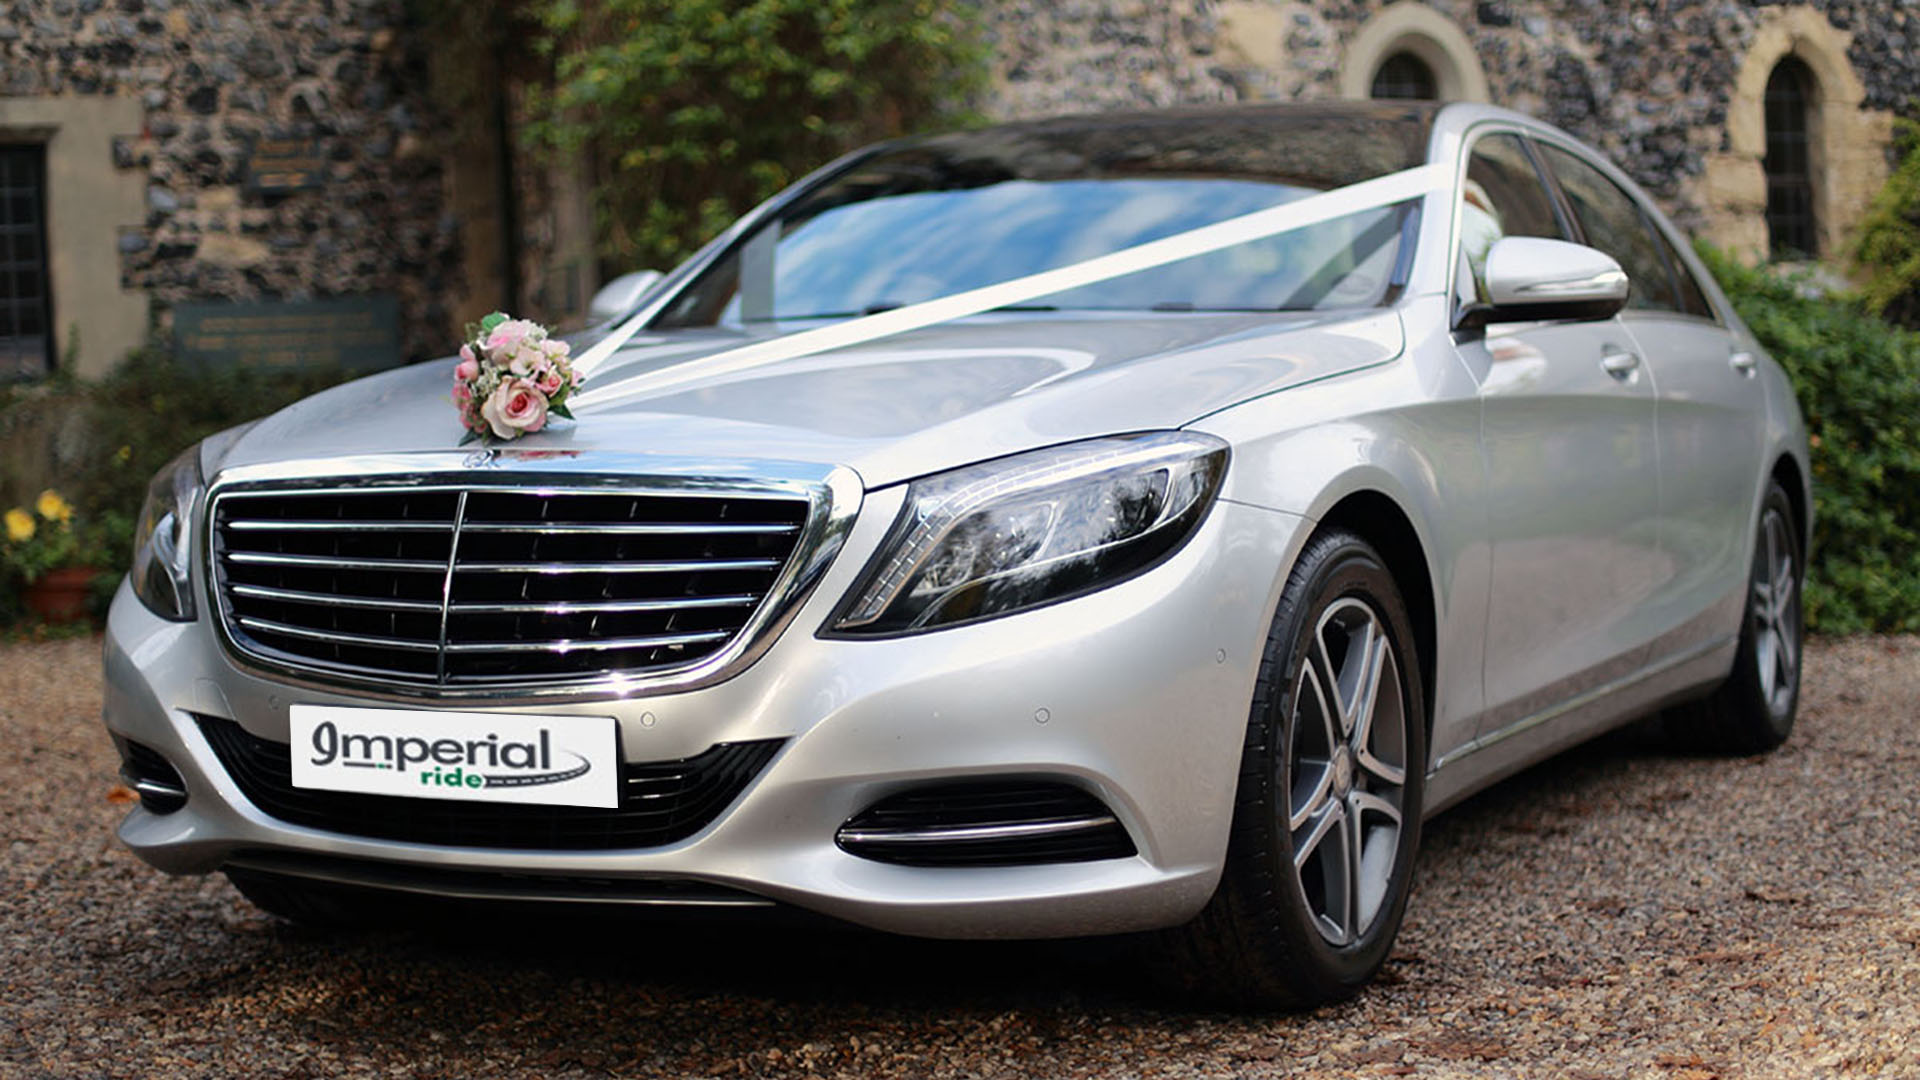 s-class-wedding-hire-in-lambeth